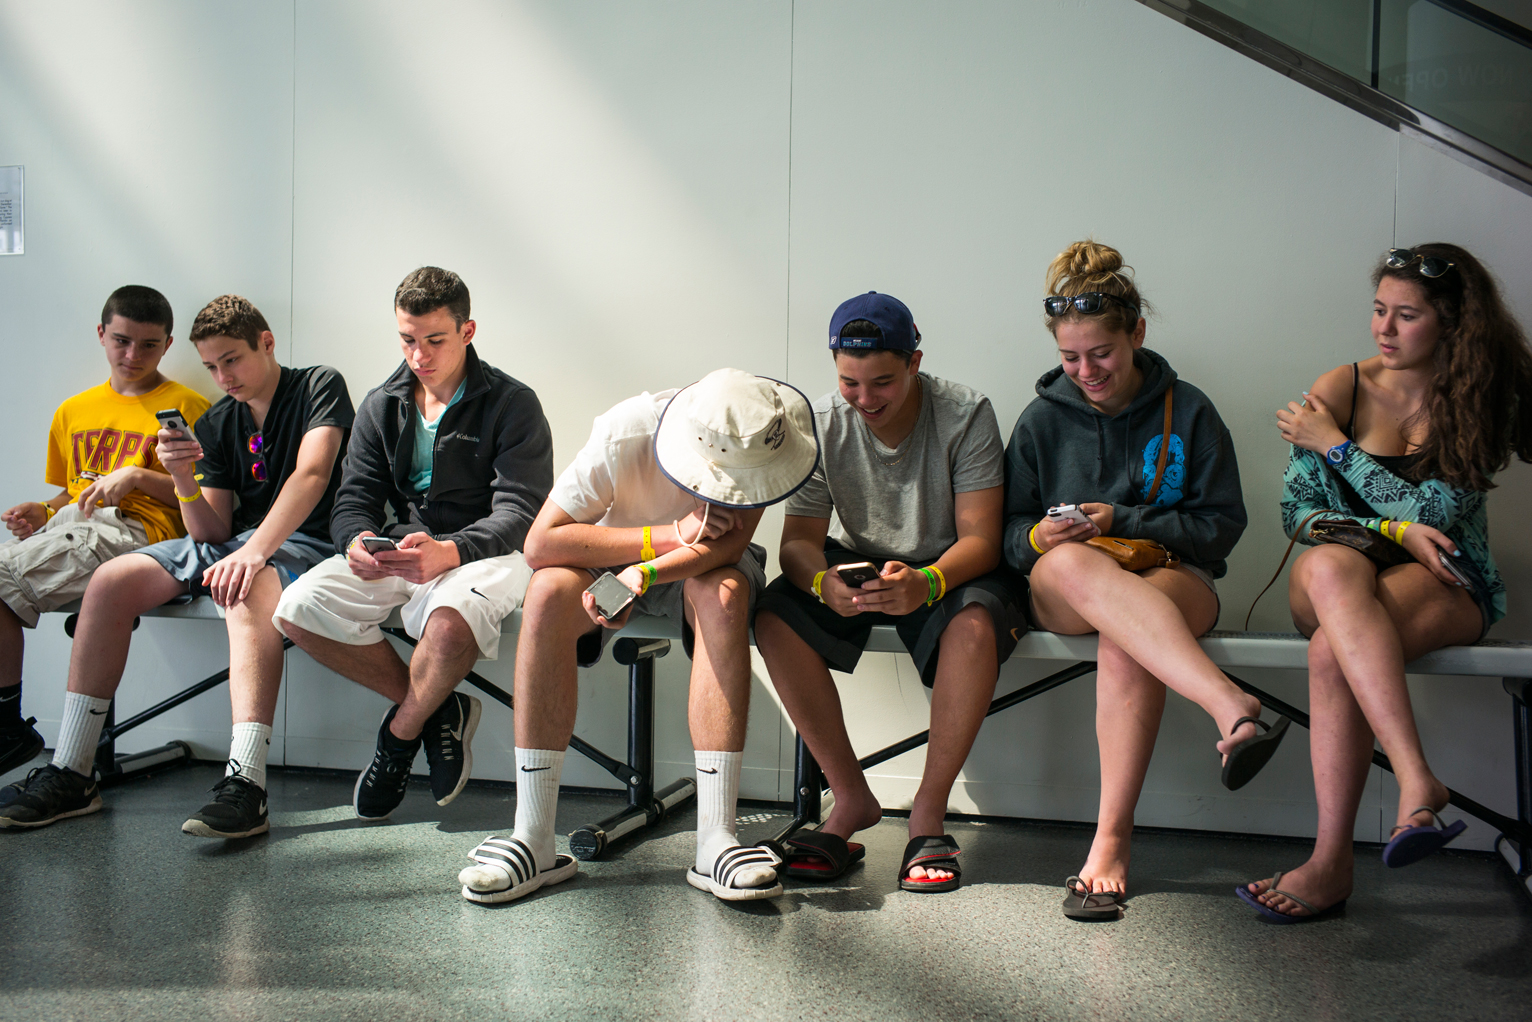 addiction among youth today Consequences of youth substance abuse  however, among the youth in this sample, the majority who committed crimes did not do so in connection with drugs .